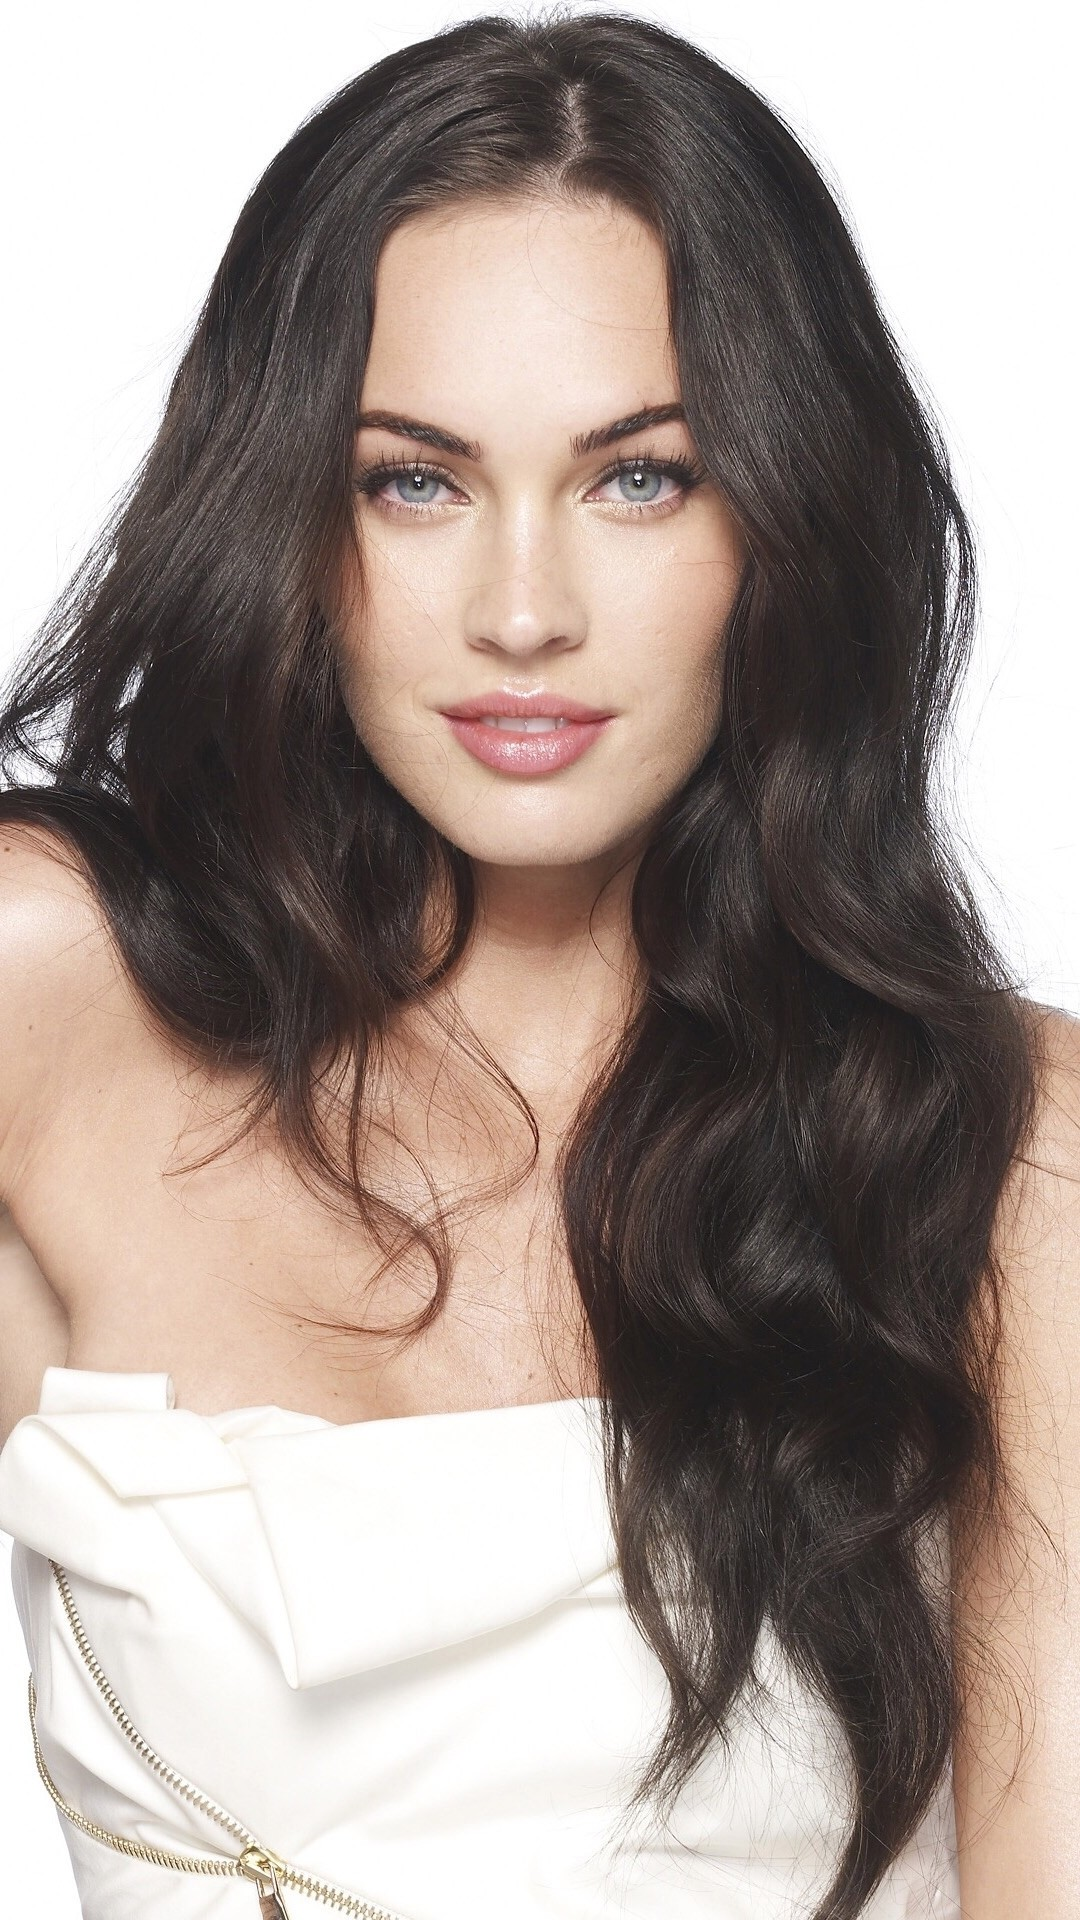 Best Wallpapers For Iphone 6 Megan Fox Wallpaper Iphone 5 183 ①